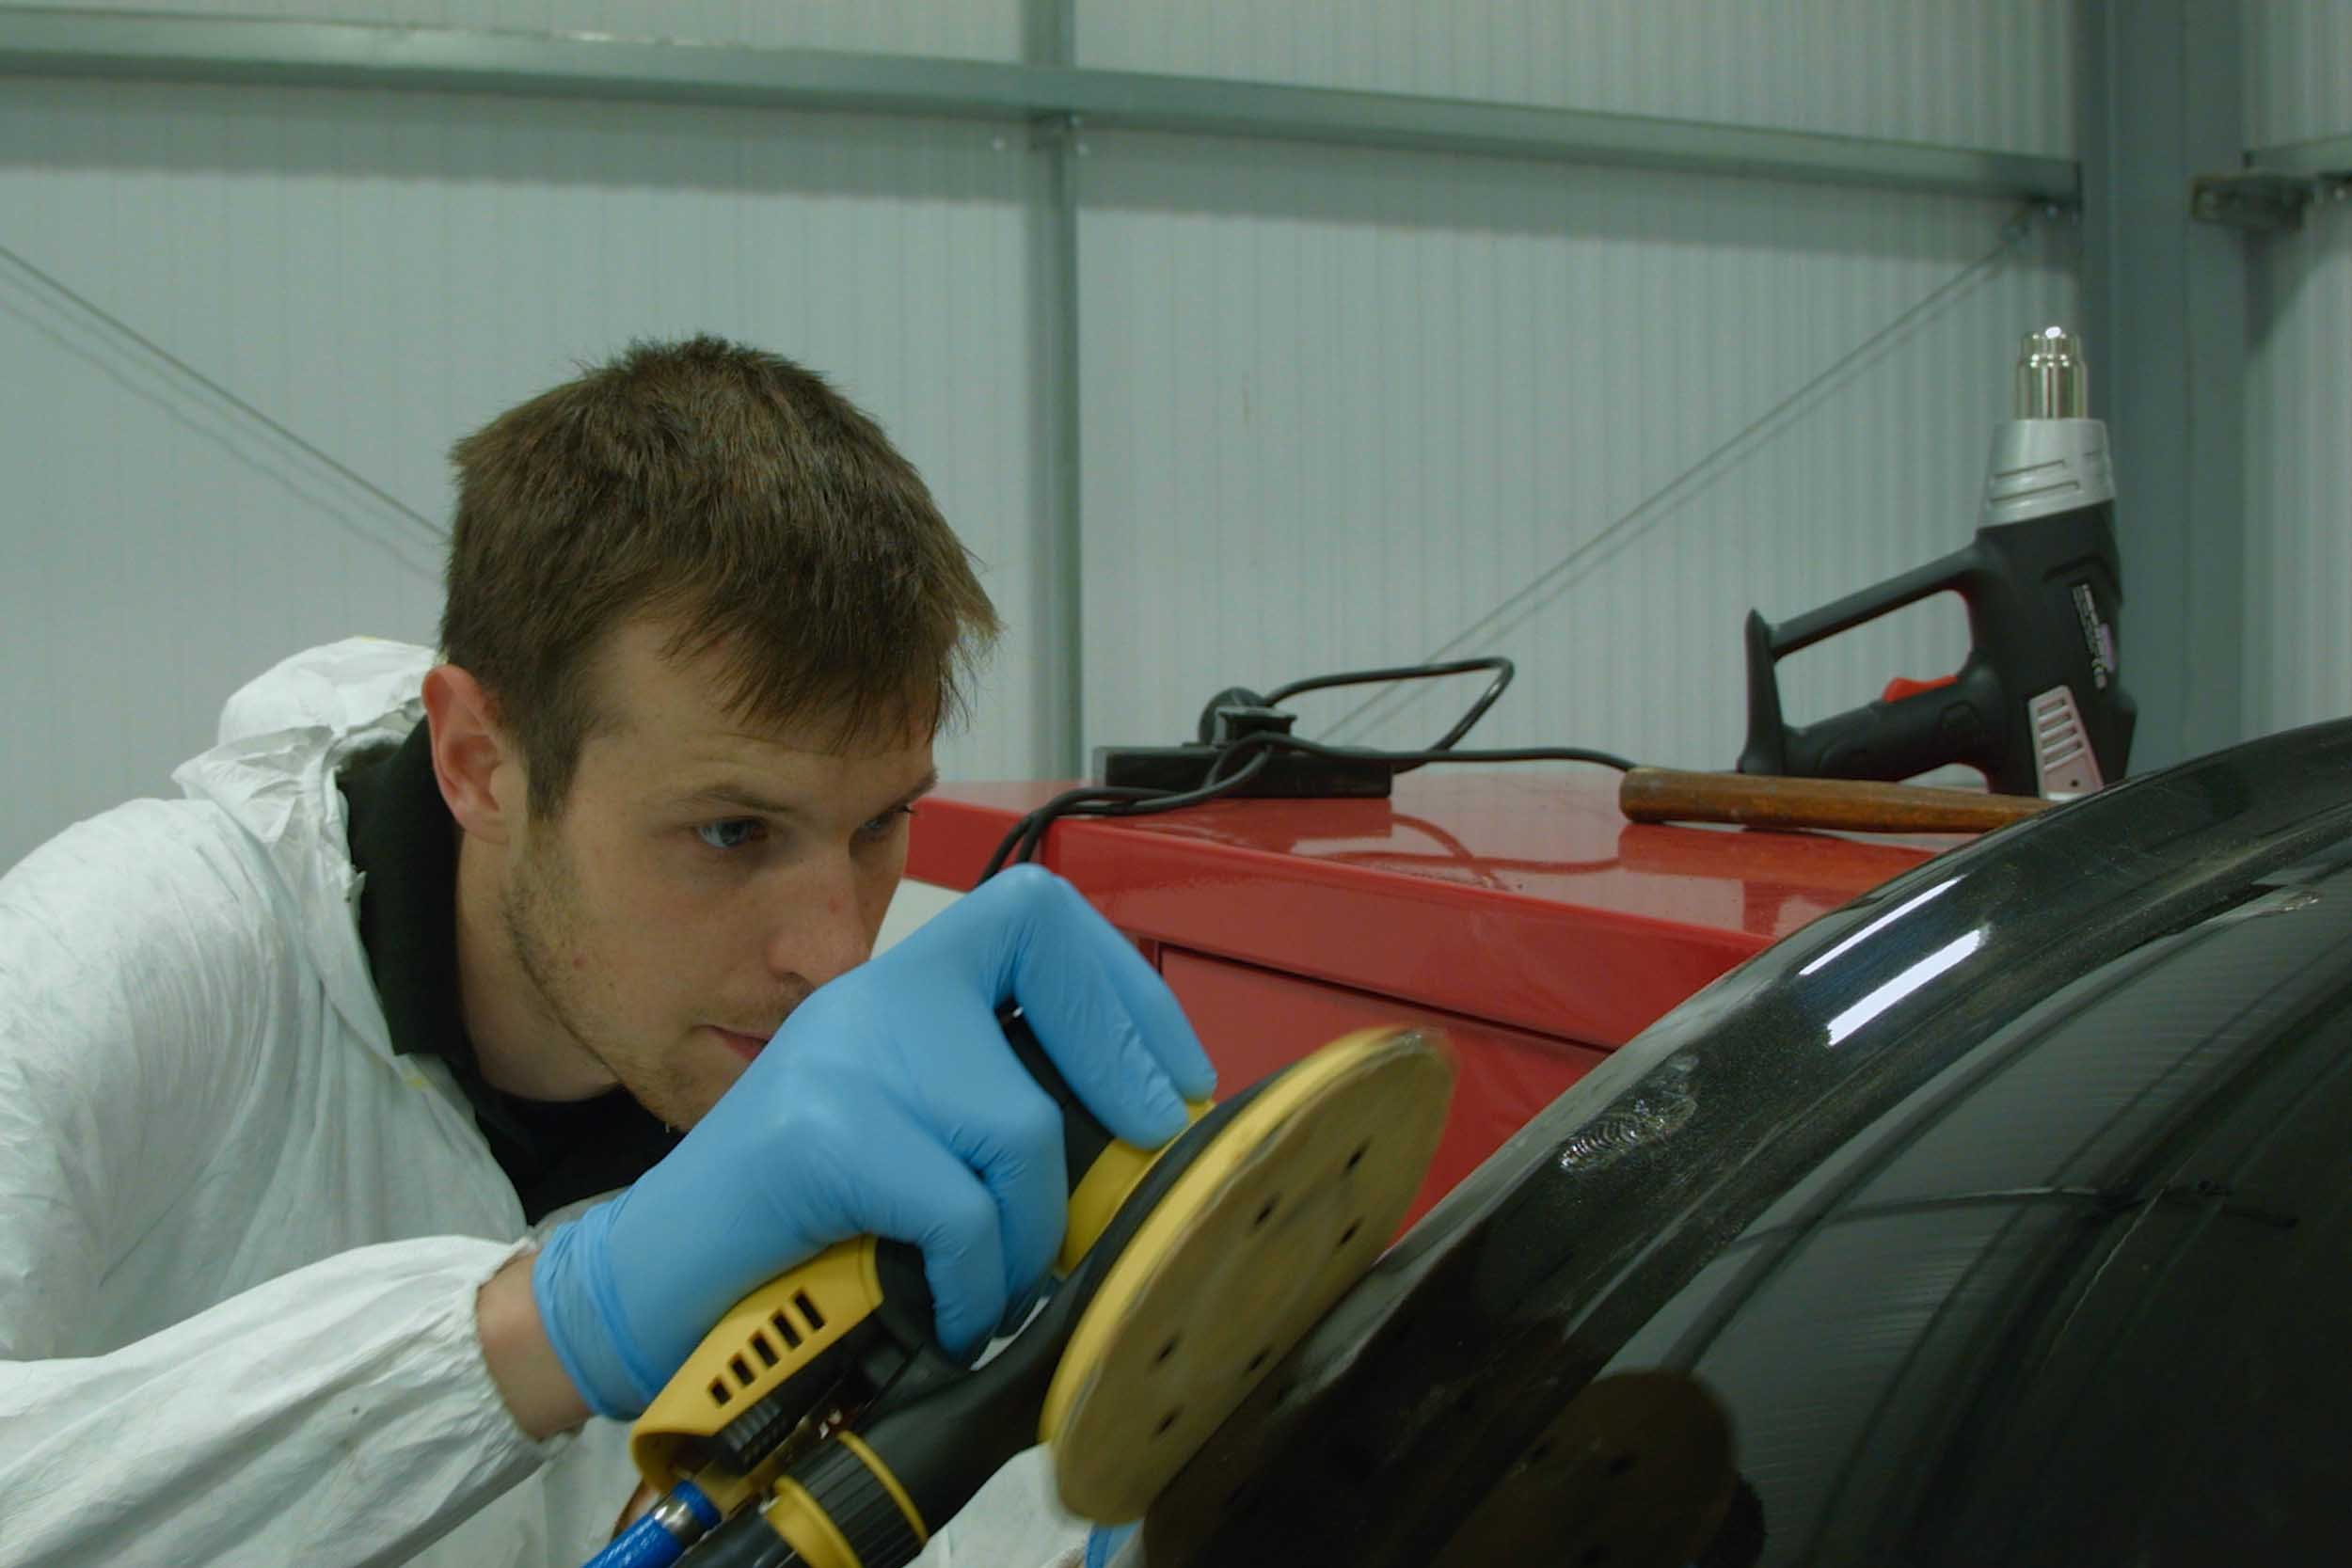 Vehicle reconditioning services from Manheim